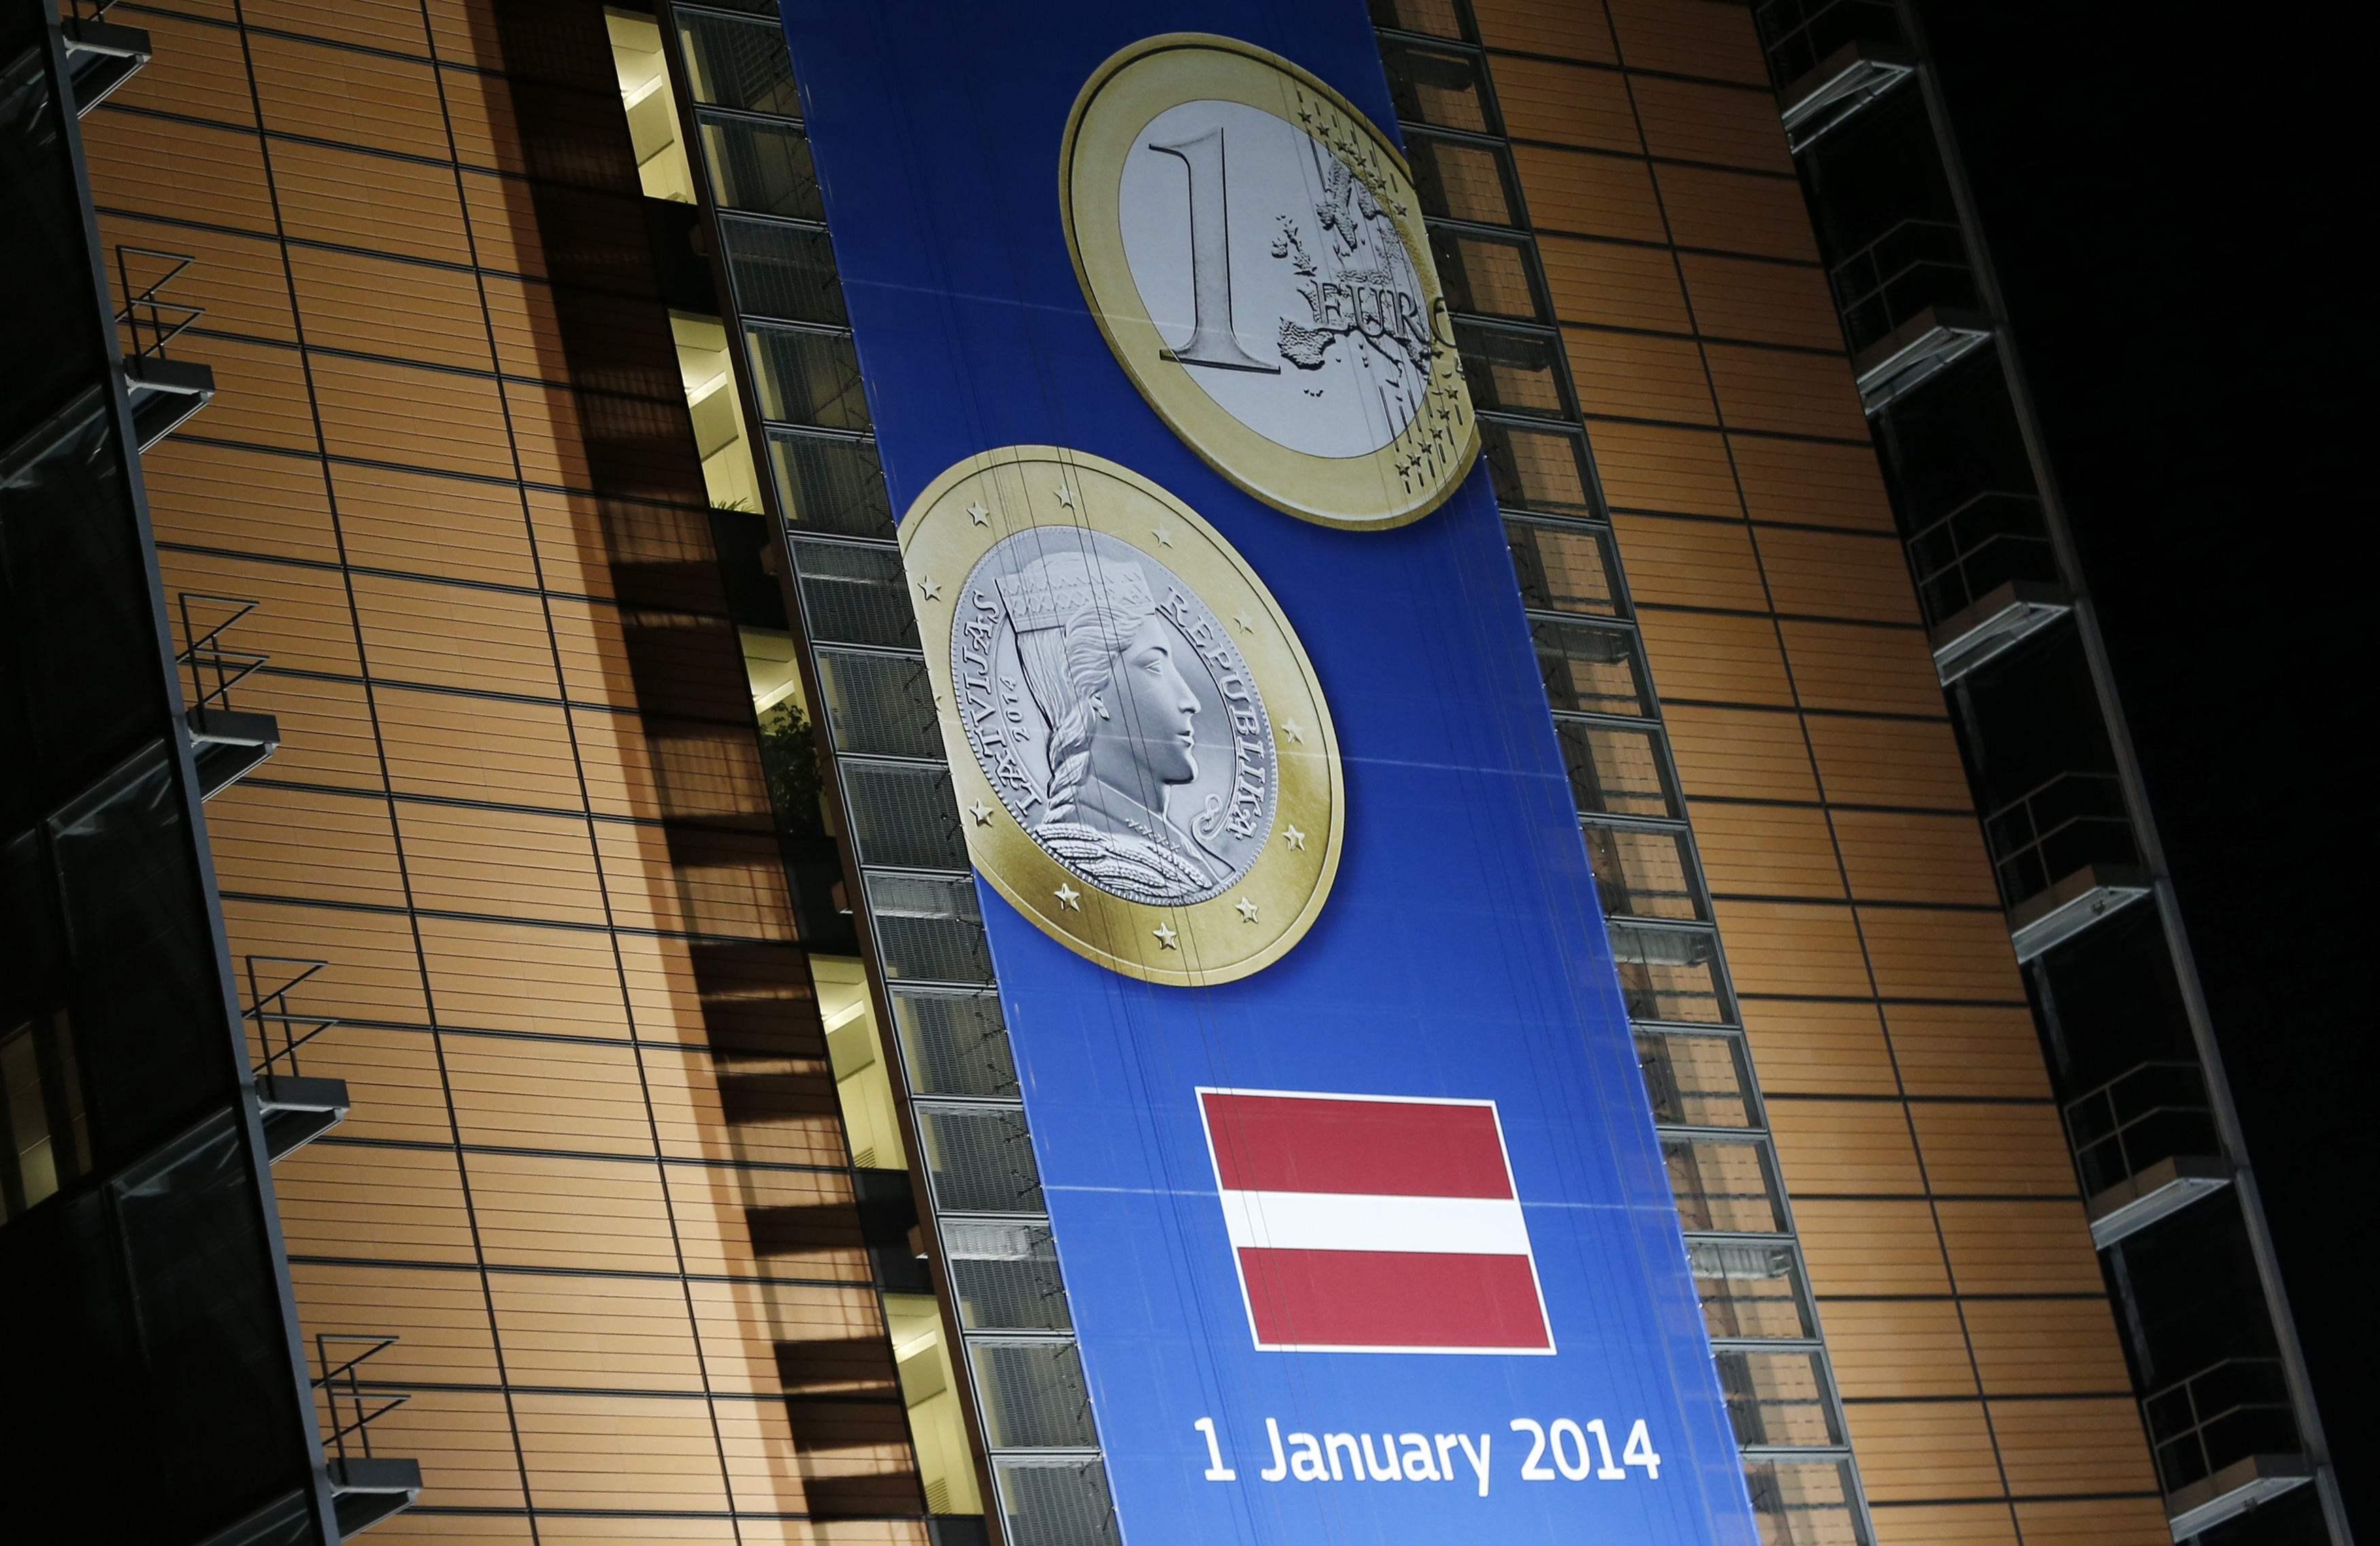 A banner showing a Latvian euro coin is seen on the facade of the European Commission headquarters in Brussels Dec. 20, 2013.